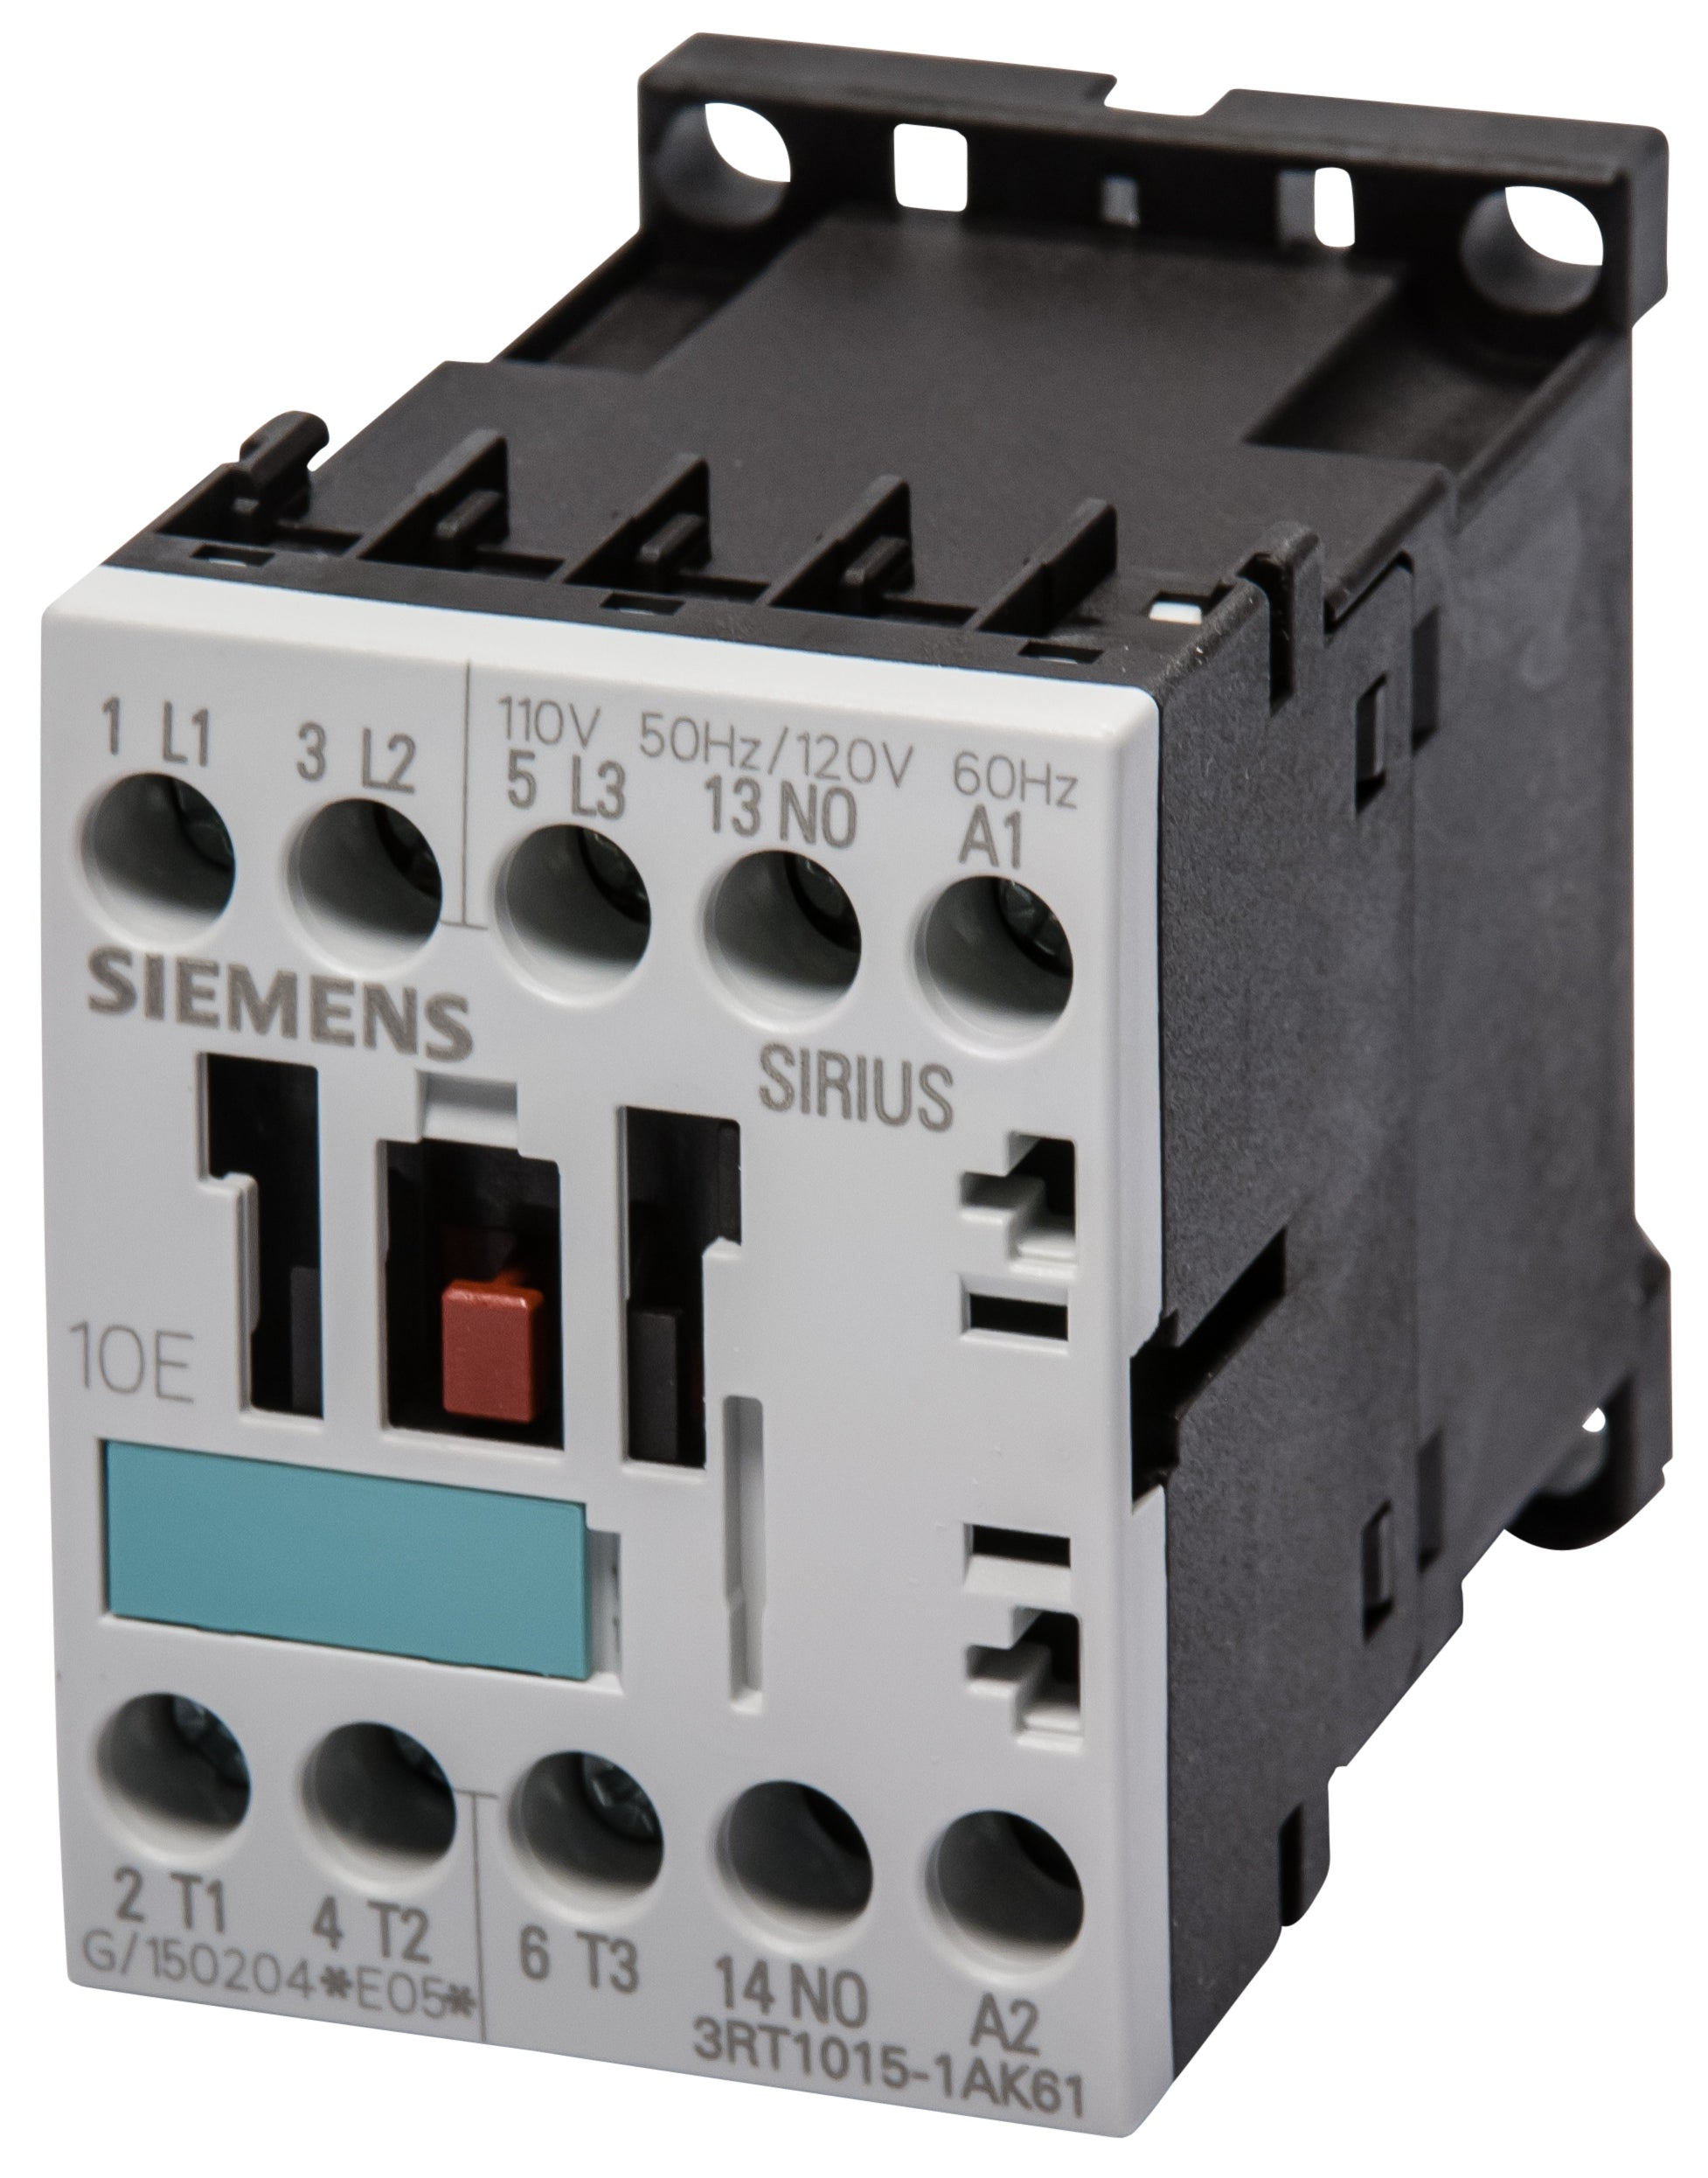 3rt Contactors Siemens Sirius Wiring Diagram For 120v Coil Contactor 3rt1015 1ak61